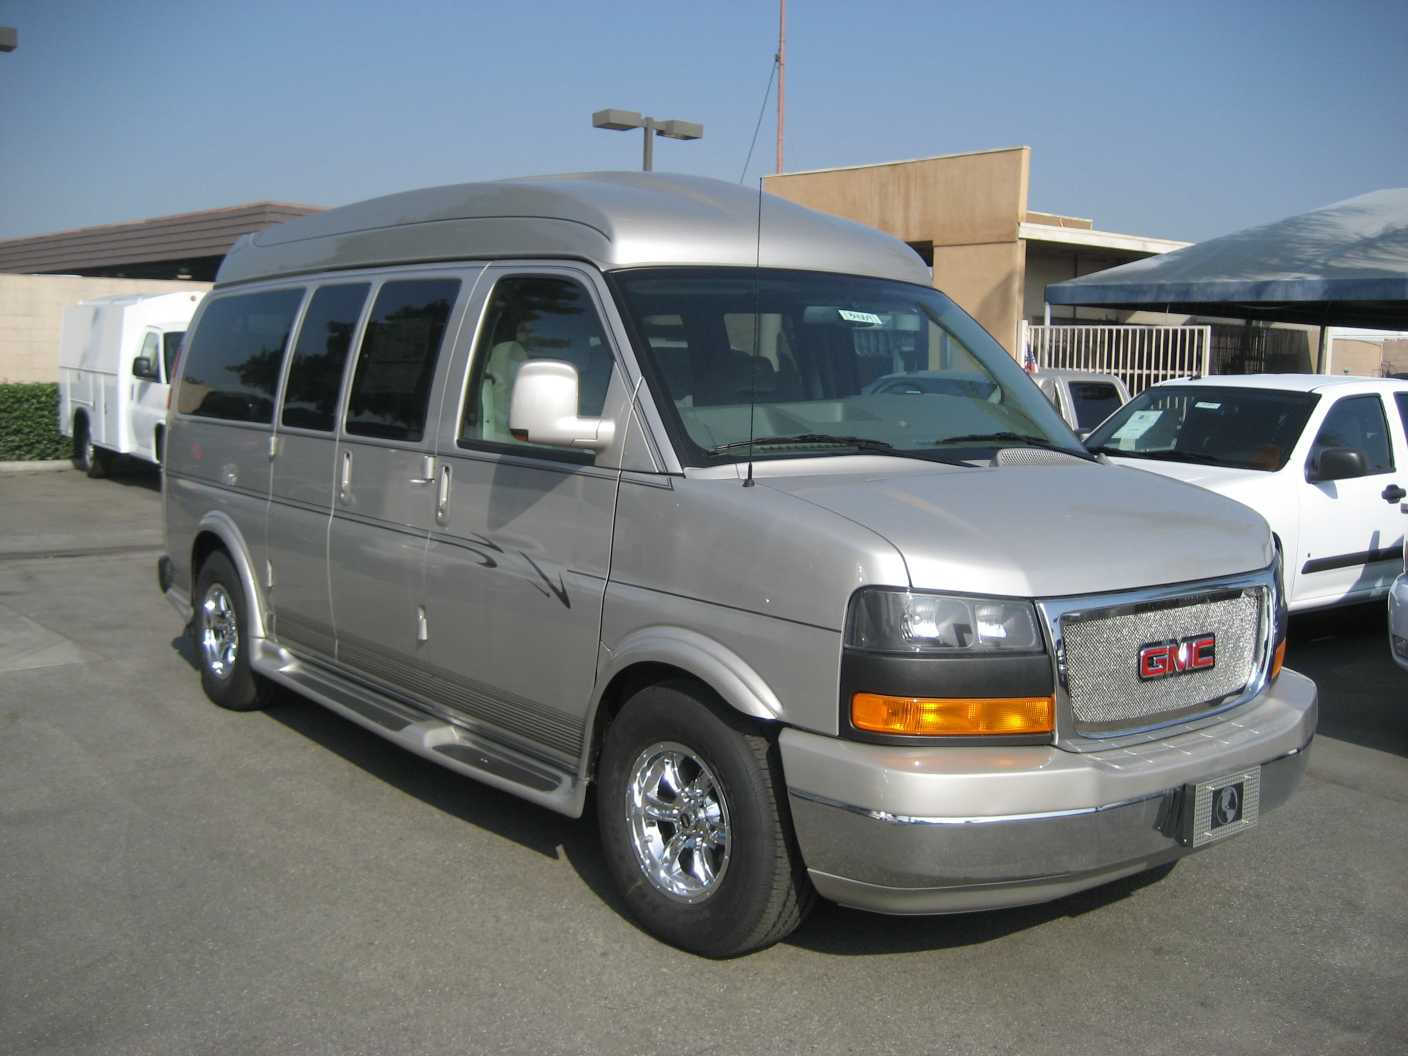 2017 explorer van gmc savana silverbirch explorer van